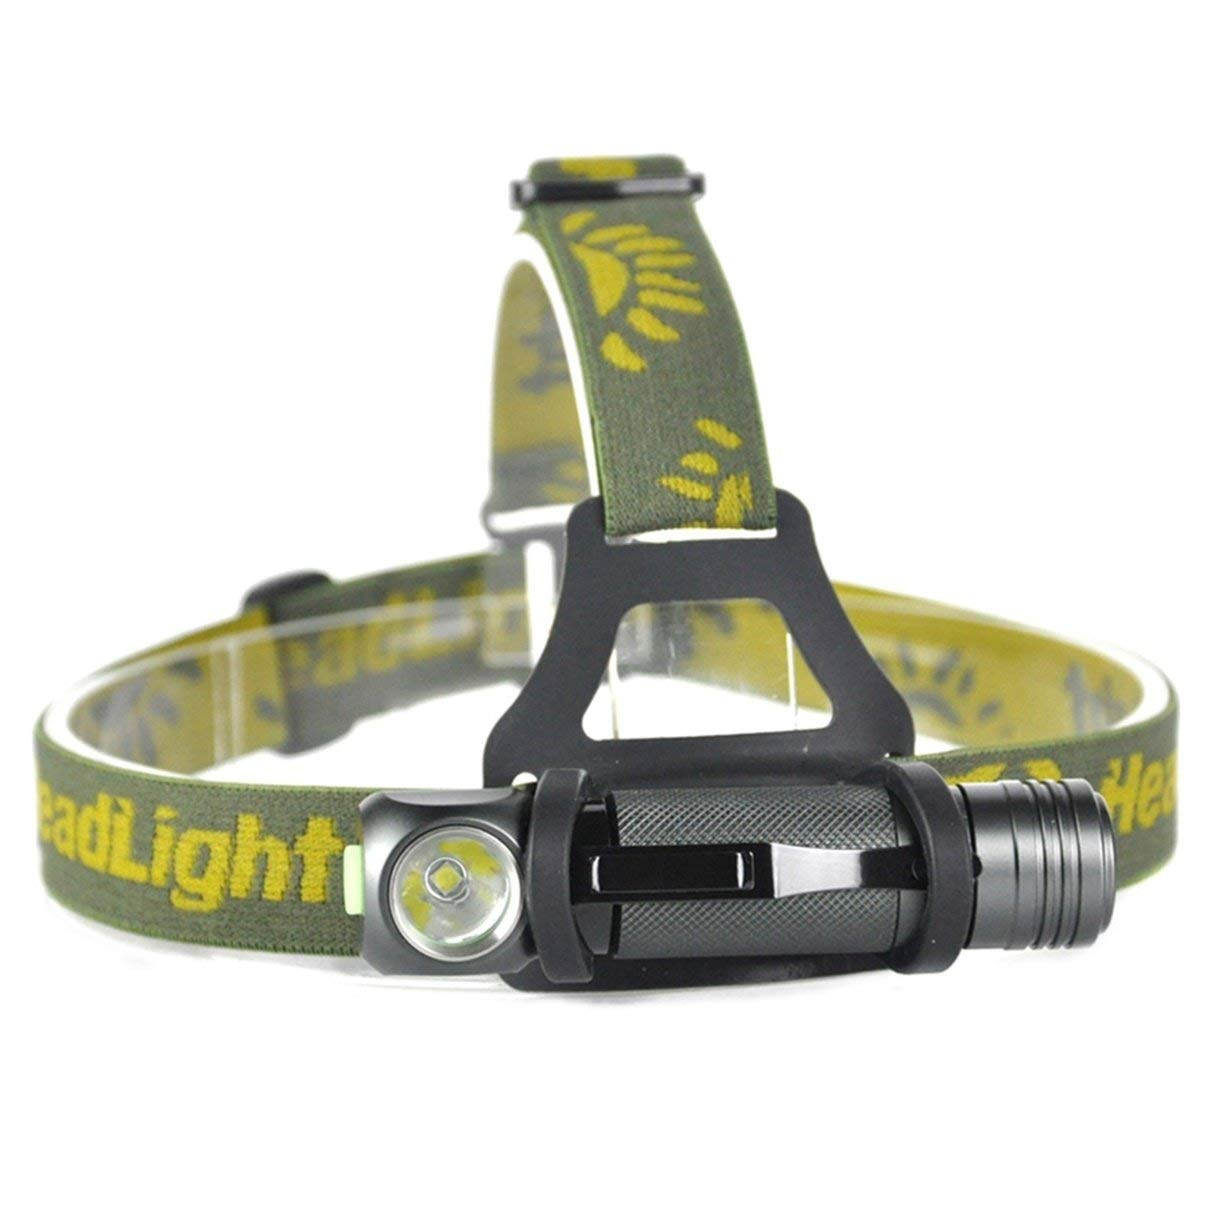 1 Set 1000 Lumen XPL V5 LED Headlamp 3 Modes Torch 5W Flashlight Headlight Lavish Fashionable Ultra Xtreme Tactical Bright Light Waterproof Outdoor Running Hiking Hunting Fishing Camping Lights